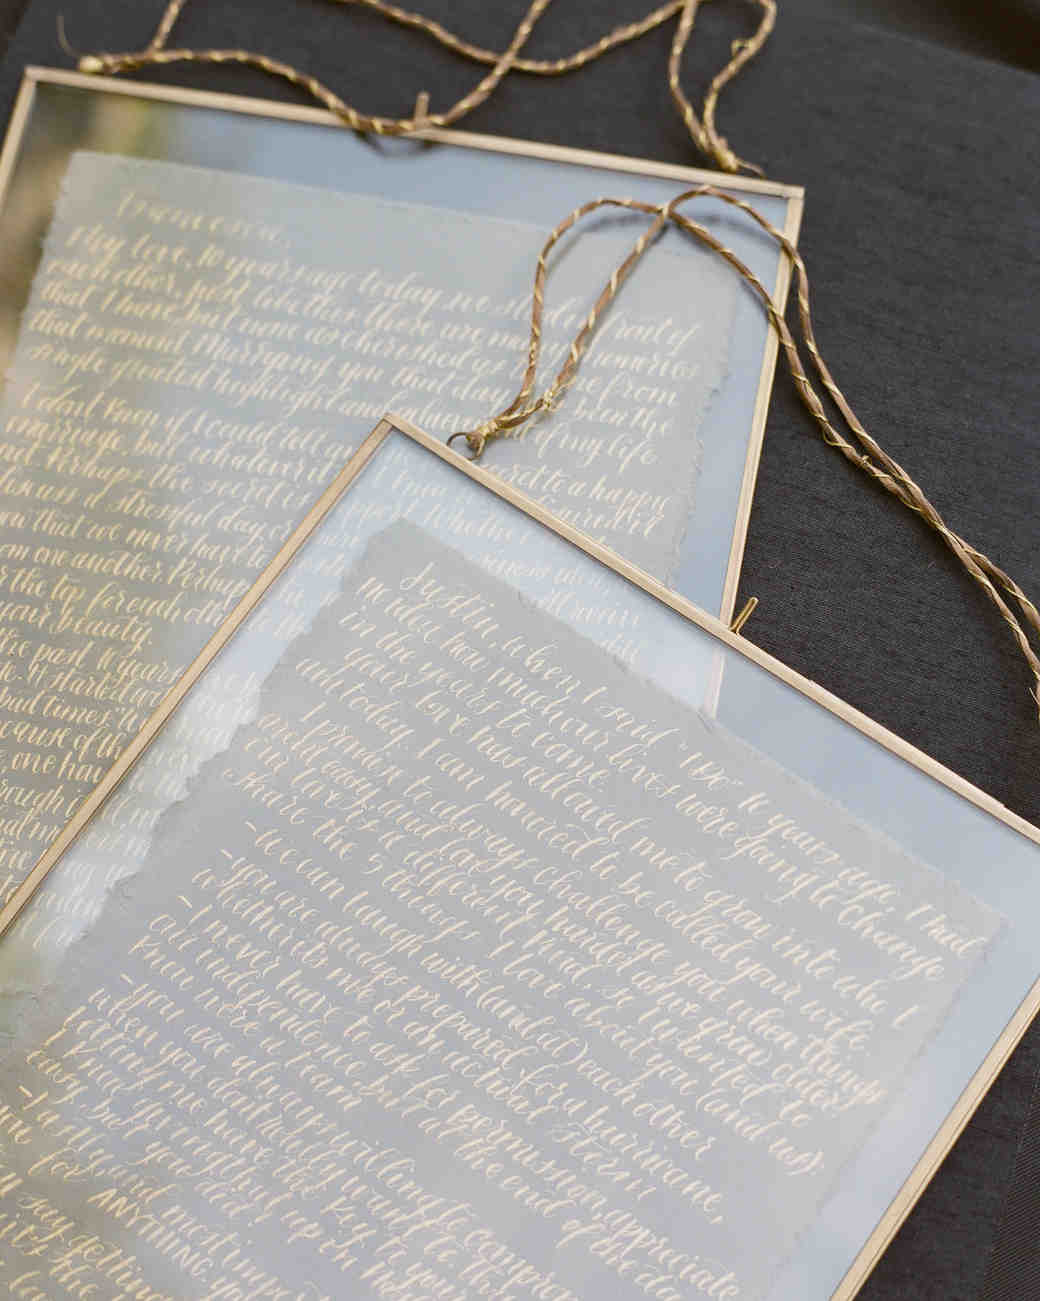 handwritten vow renewals displayed in glass frame with gold trim